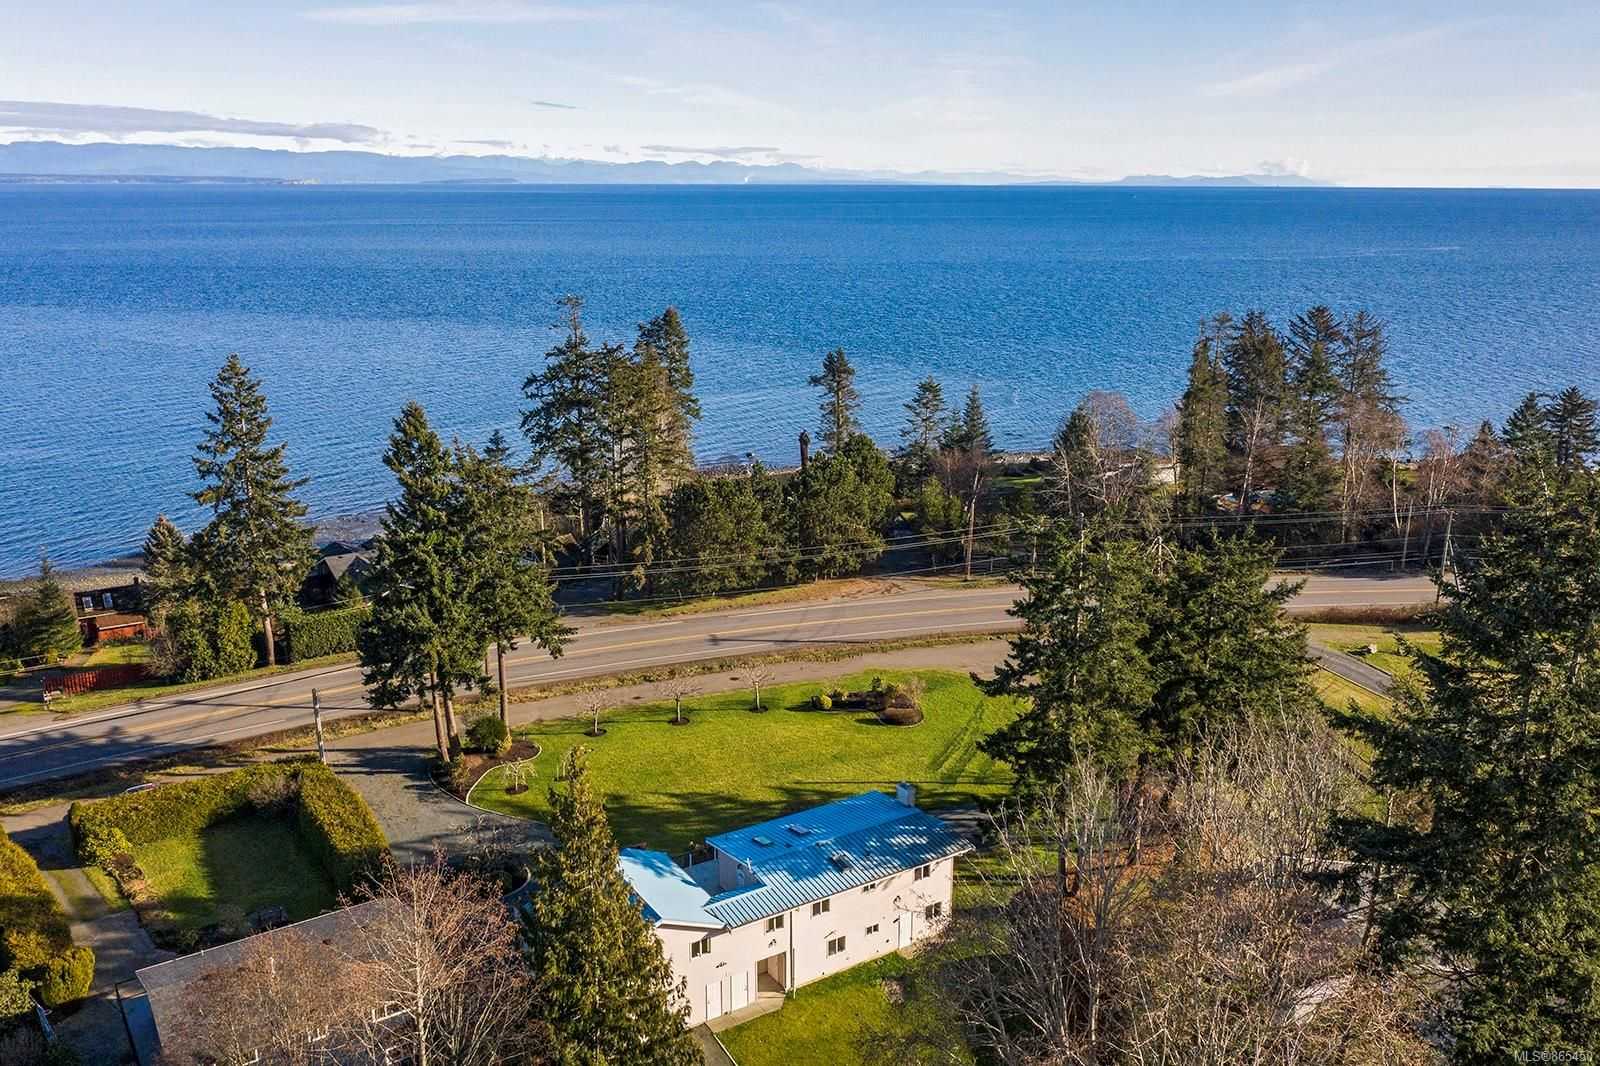 Main Photo: 3892 S Island Hwy in : CR Campbell River South House for sale (Campbell River)  : MLS®# 865450